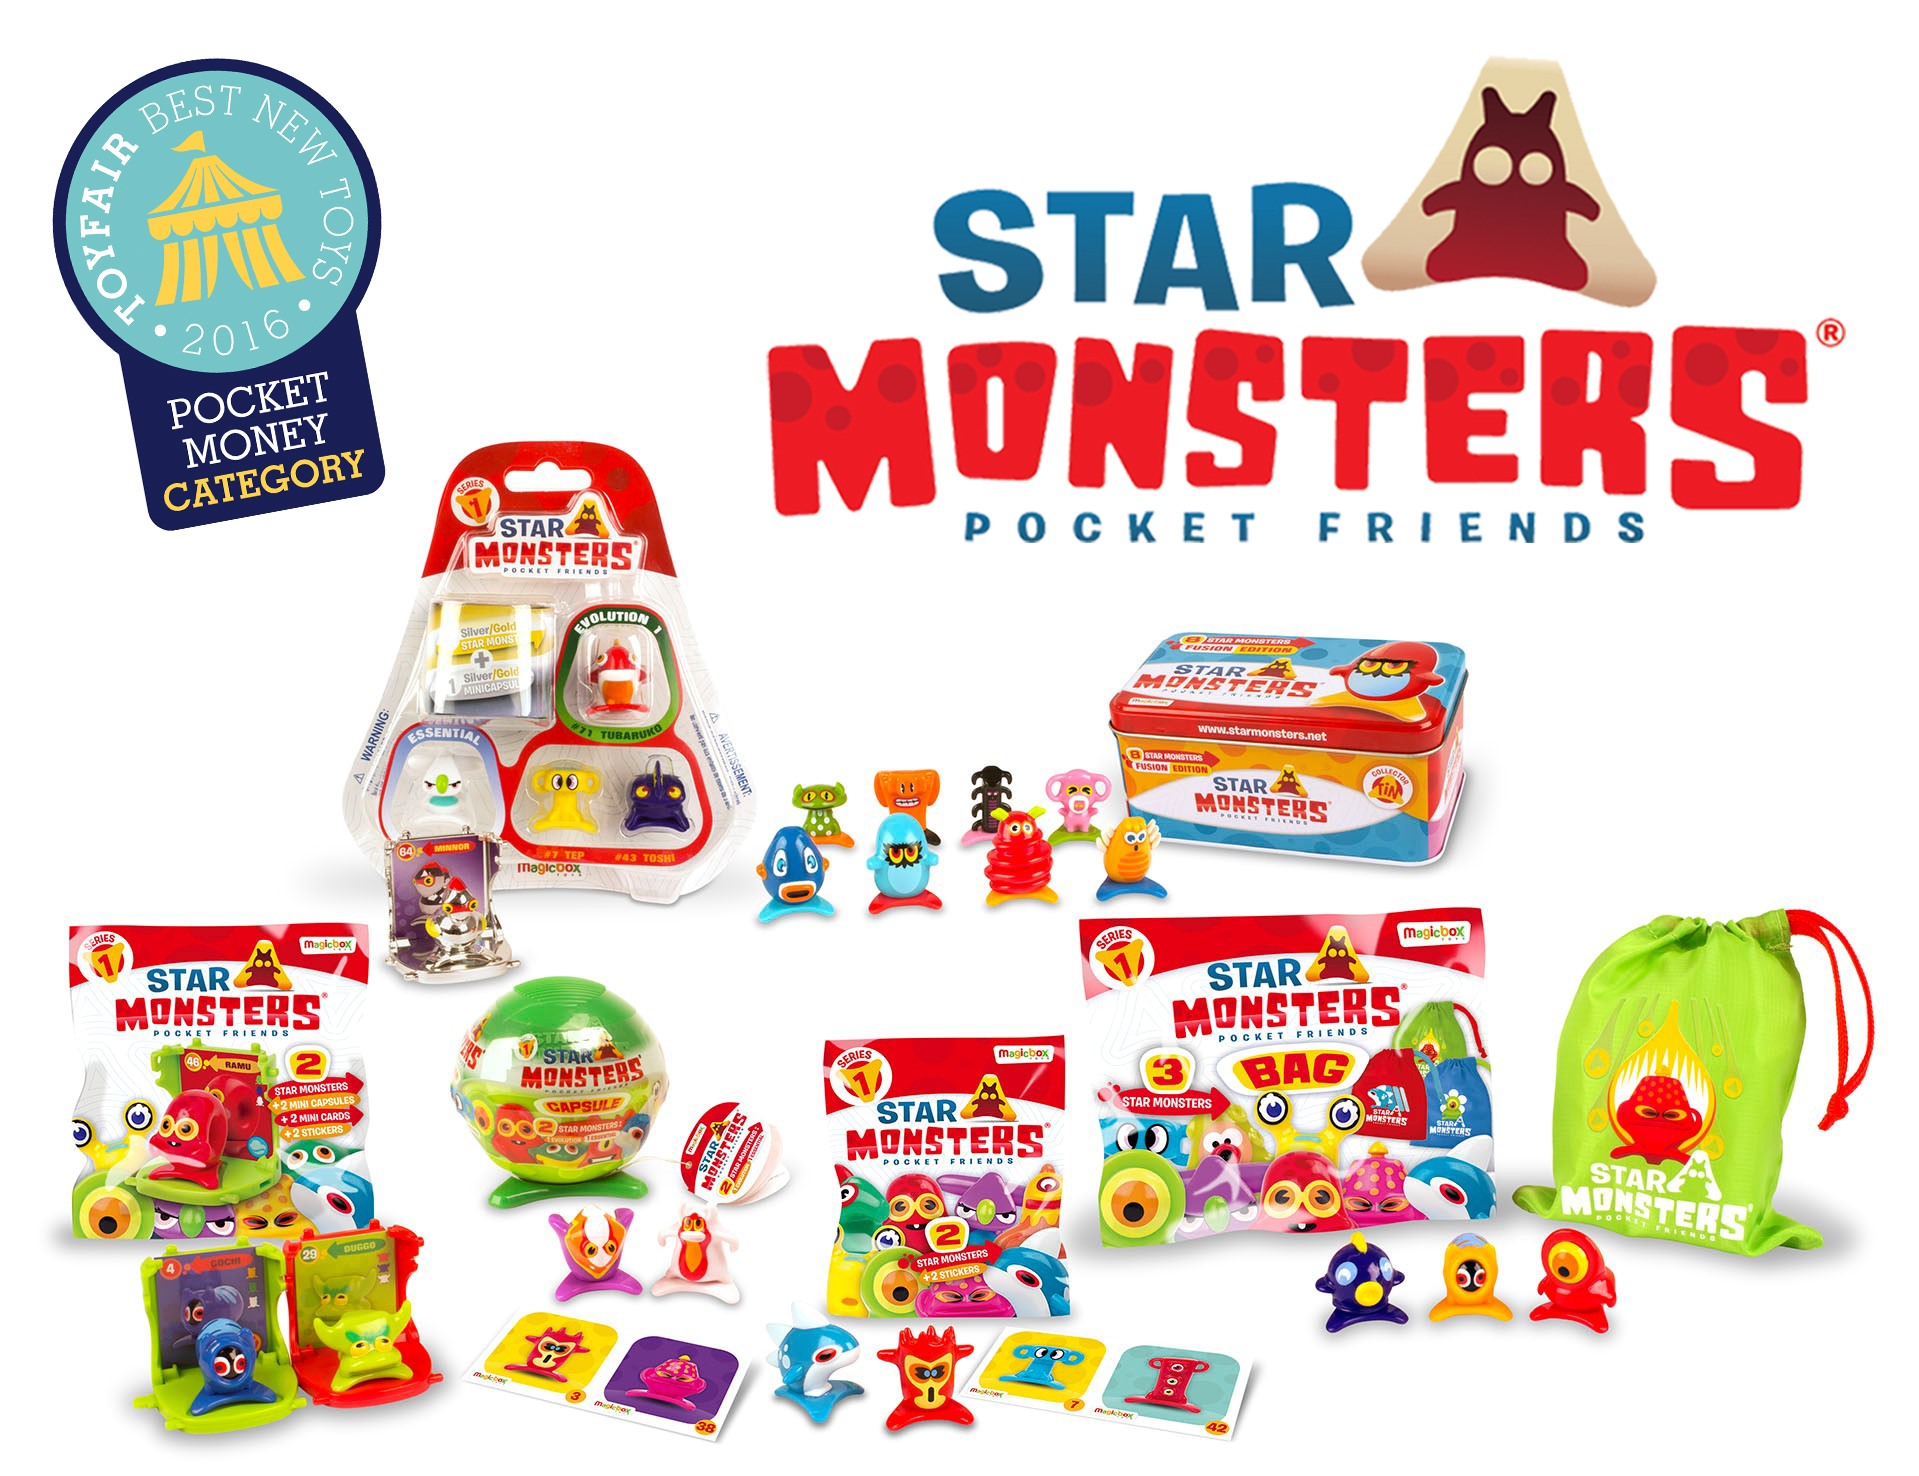 Star Monsters